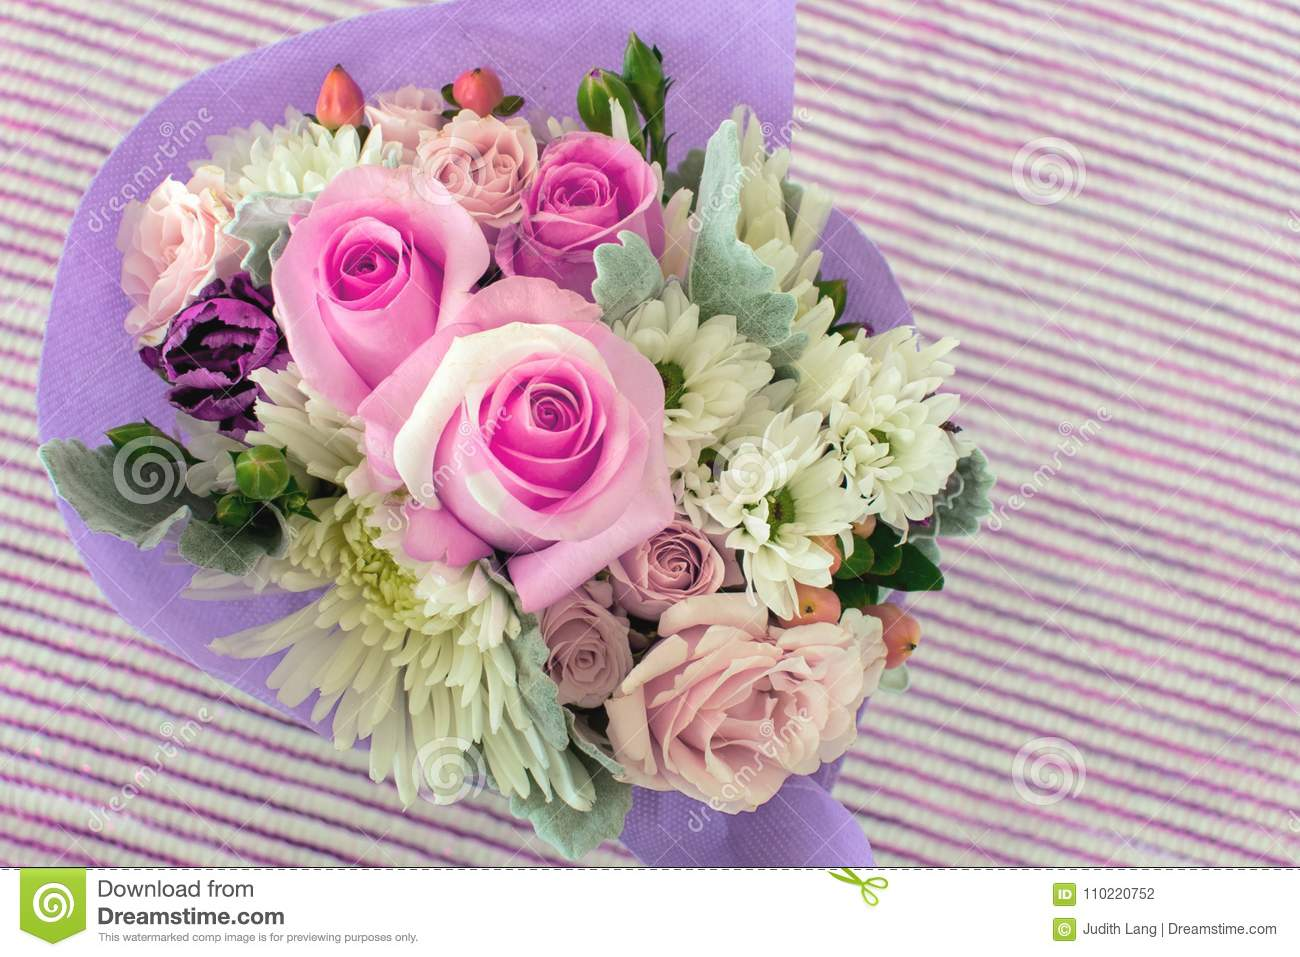 A small bouquet of pretty pink miniature roses on striped background.